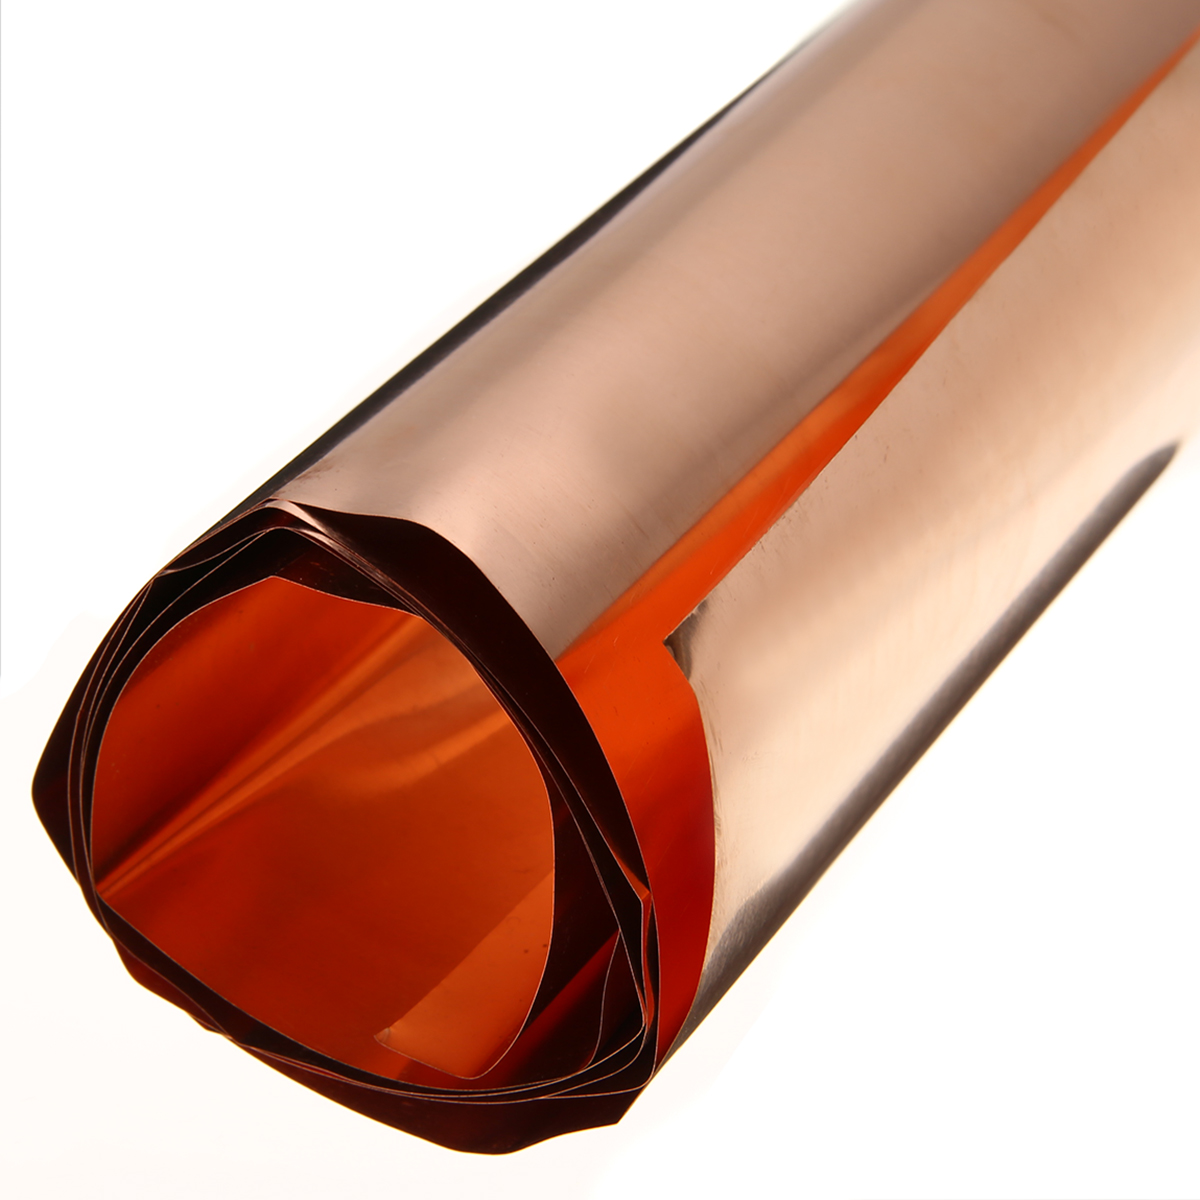 1pc 99.9% Pure Copper Cu Metal Sheet Foil Plate 200x1000mm 0.1mm Thickness For Power Tools